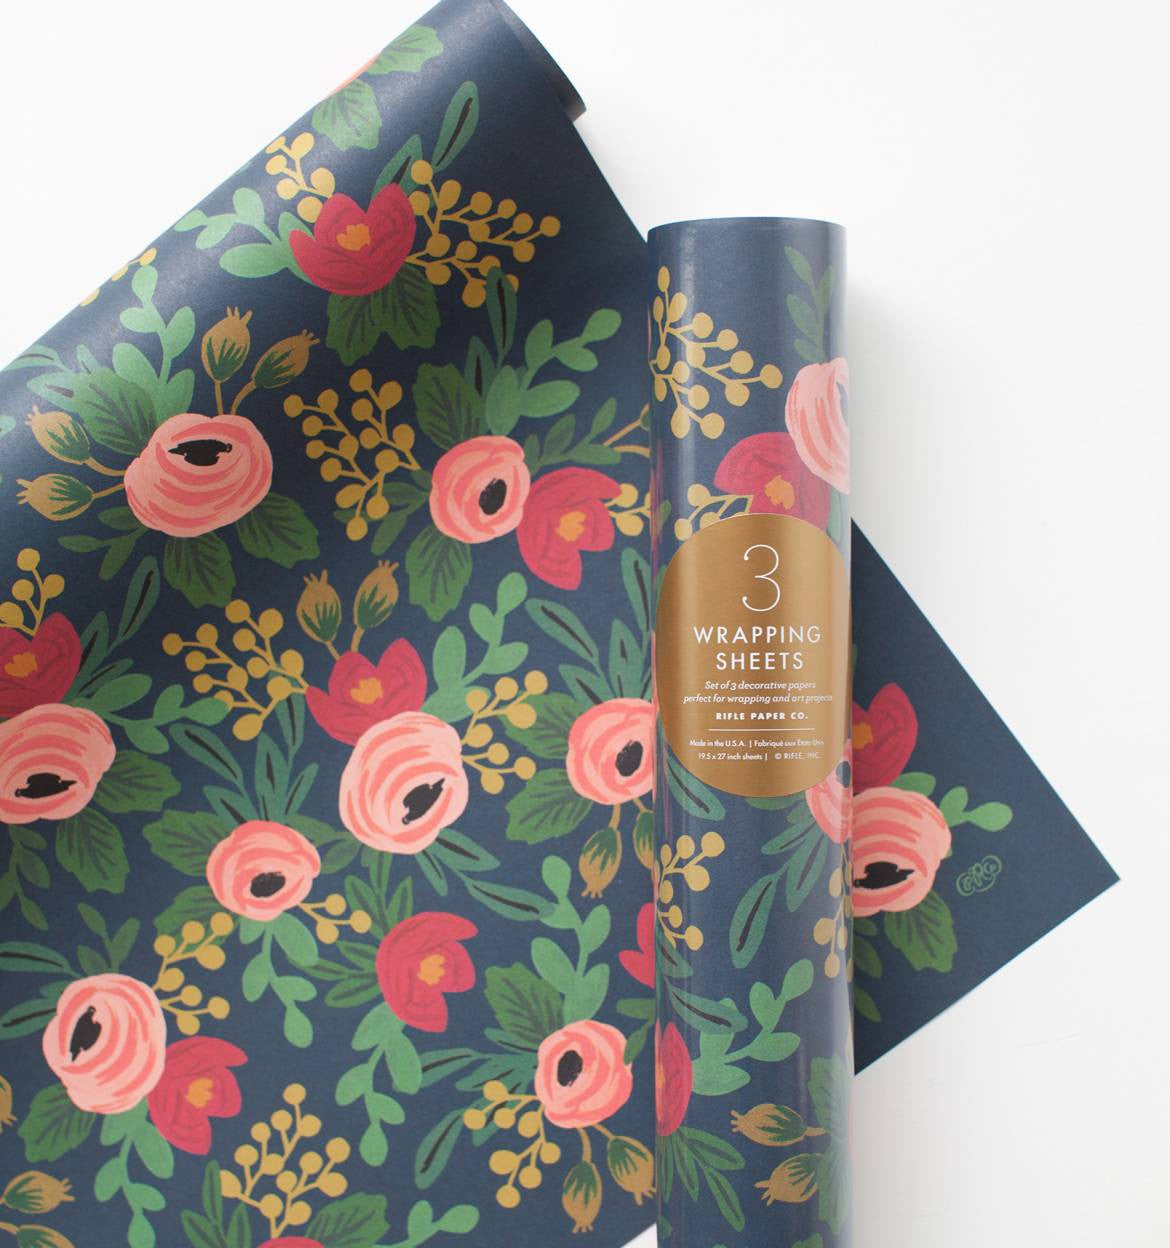 Rosa Wrapping Sheets